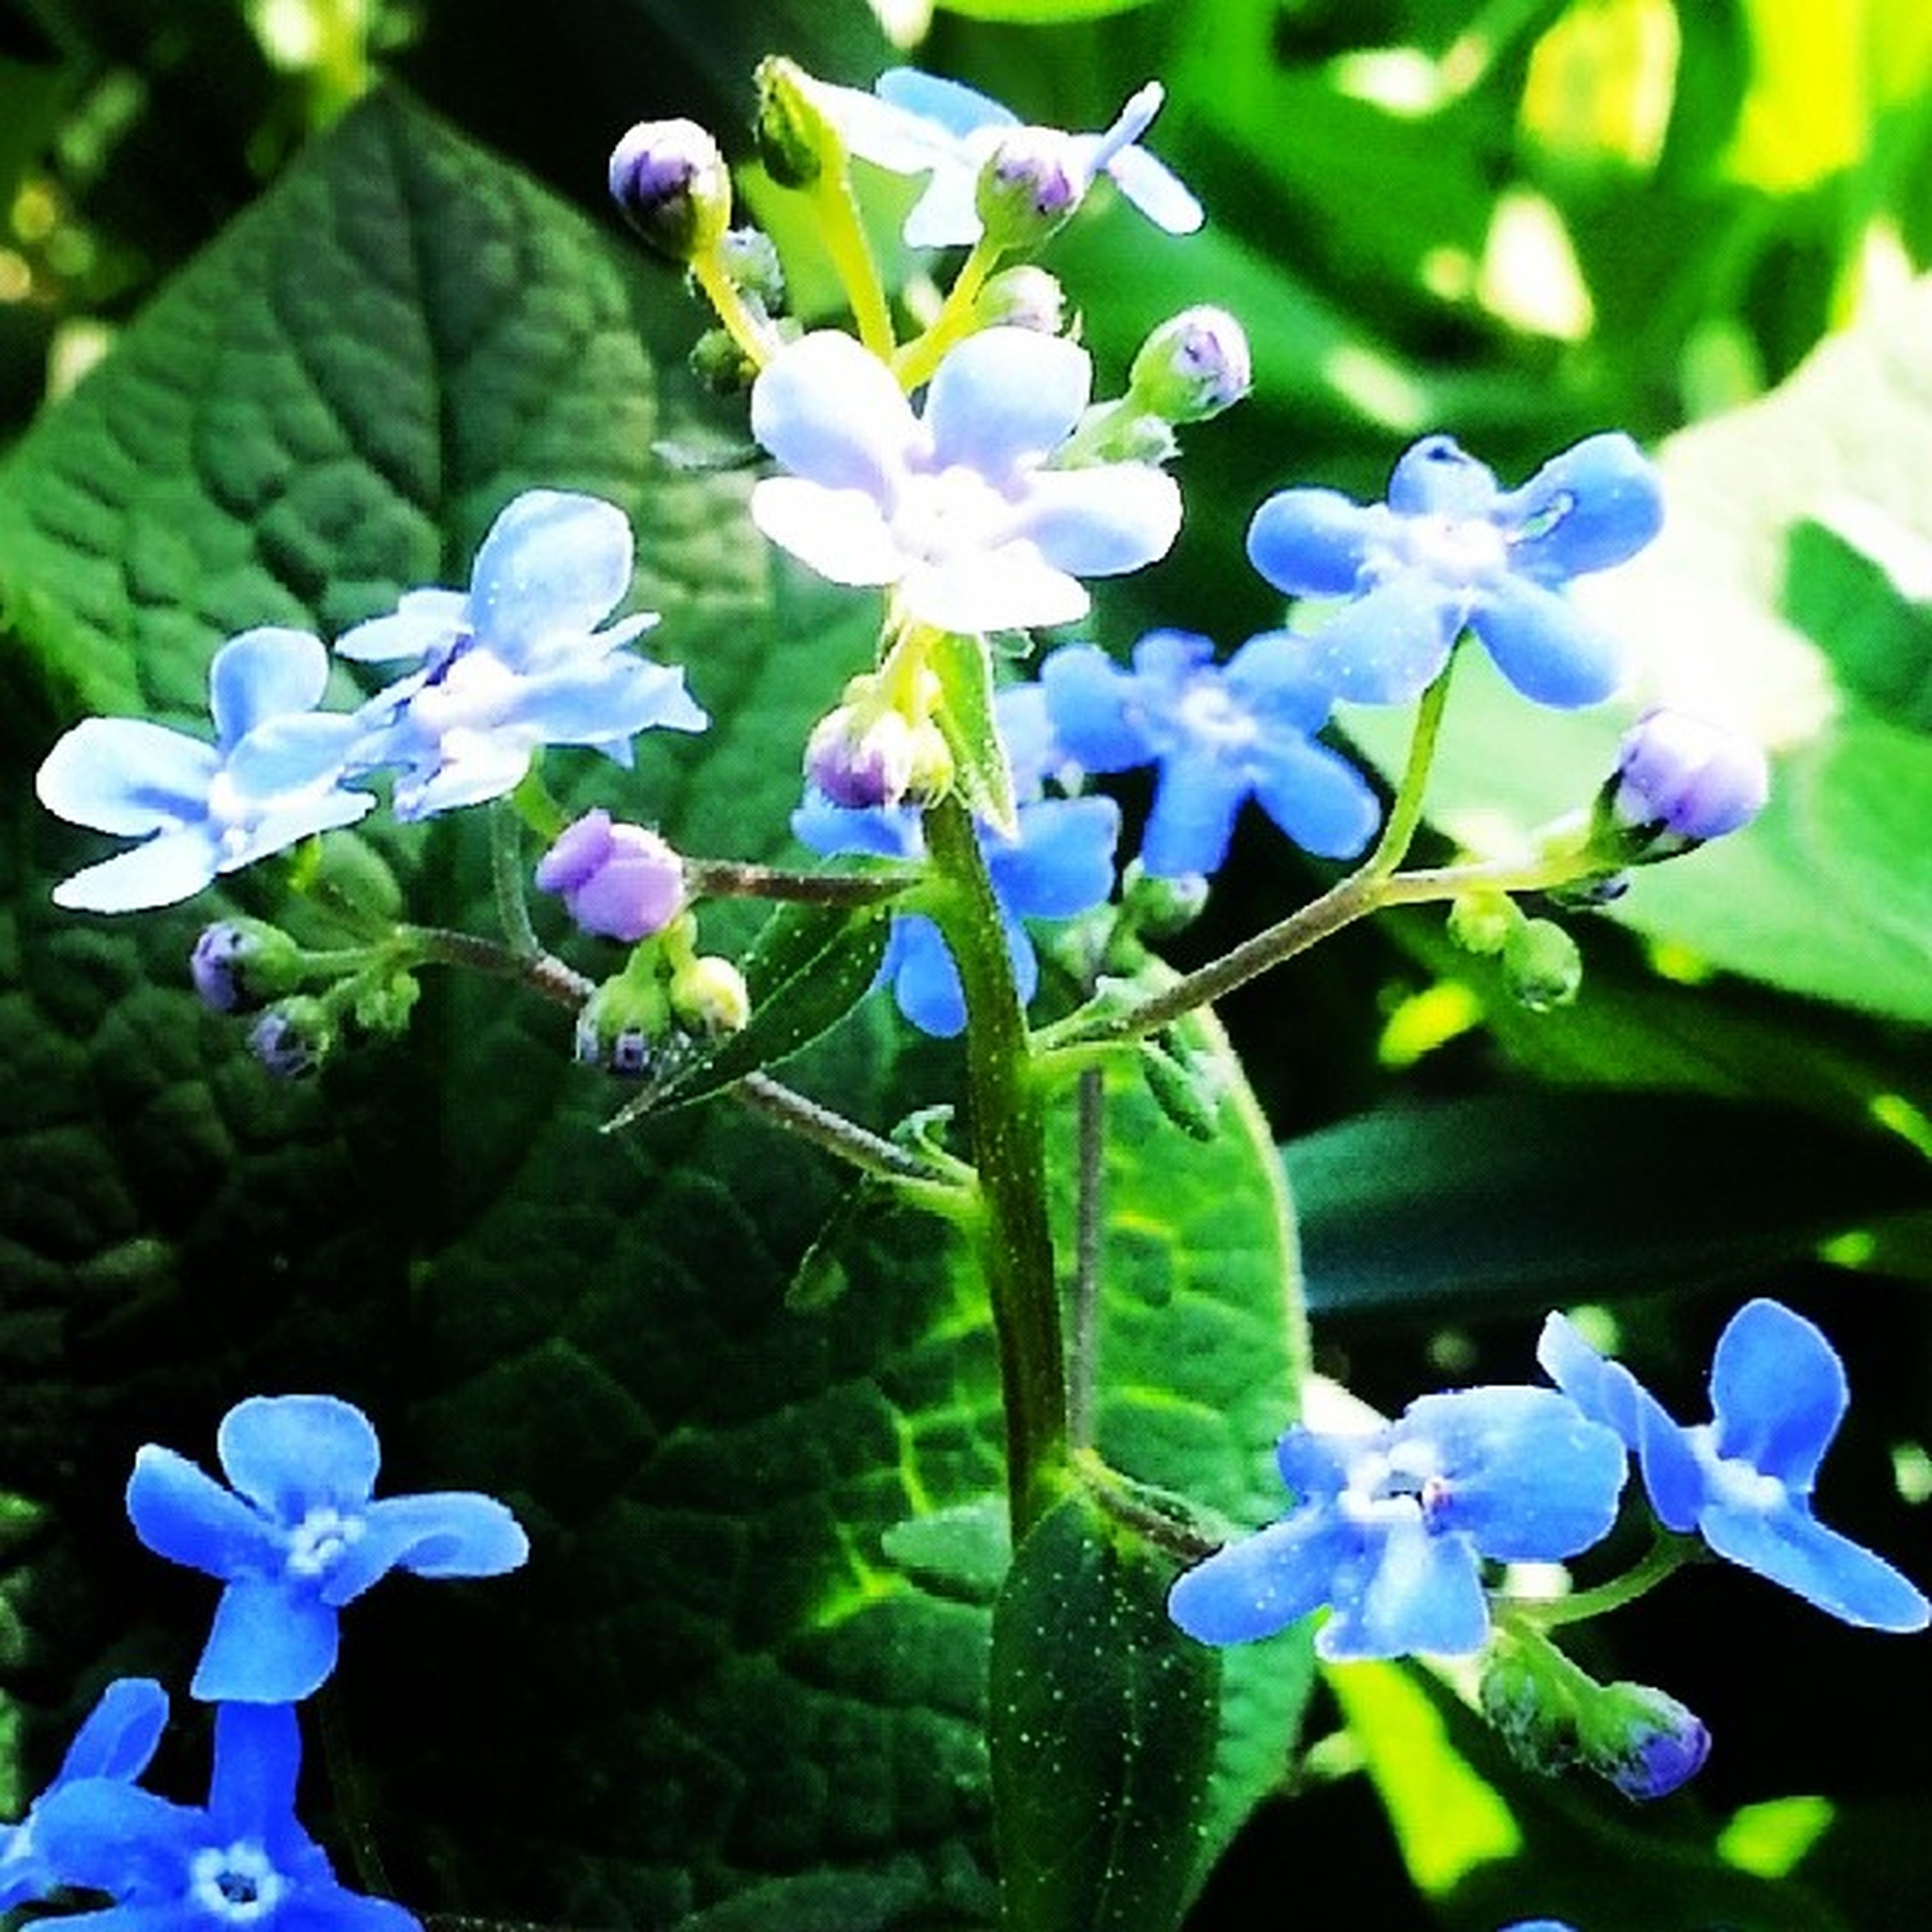 flower, freshness, fragility, purple, petal, growth, plant, flower head, beauty in nature, blue, blooming, leaf, nature, close-up, focus on foreground, in bloom, stem, hydrangea, park - man made space, water